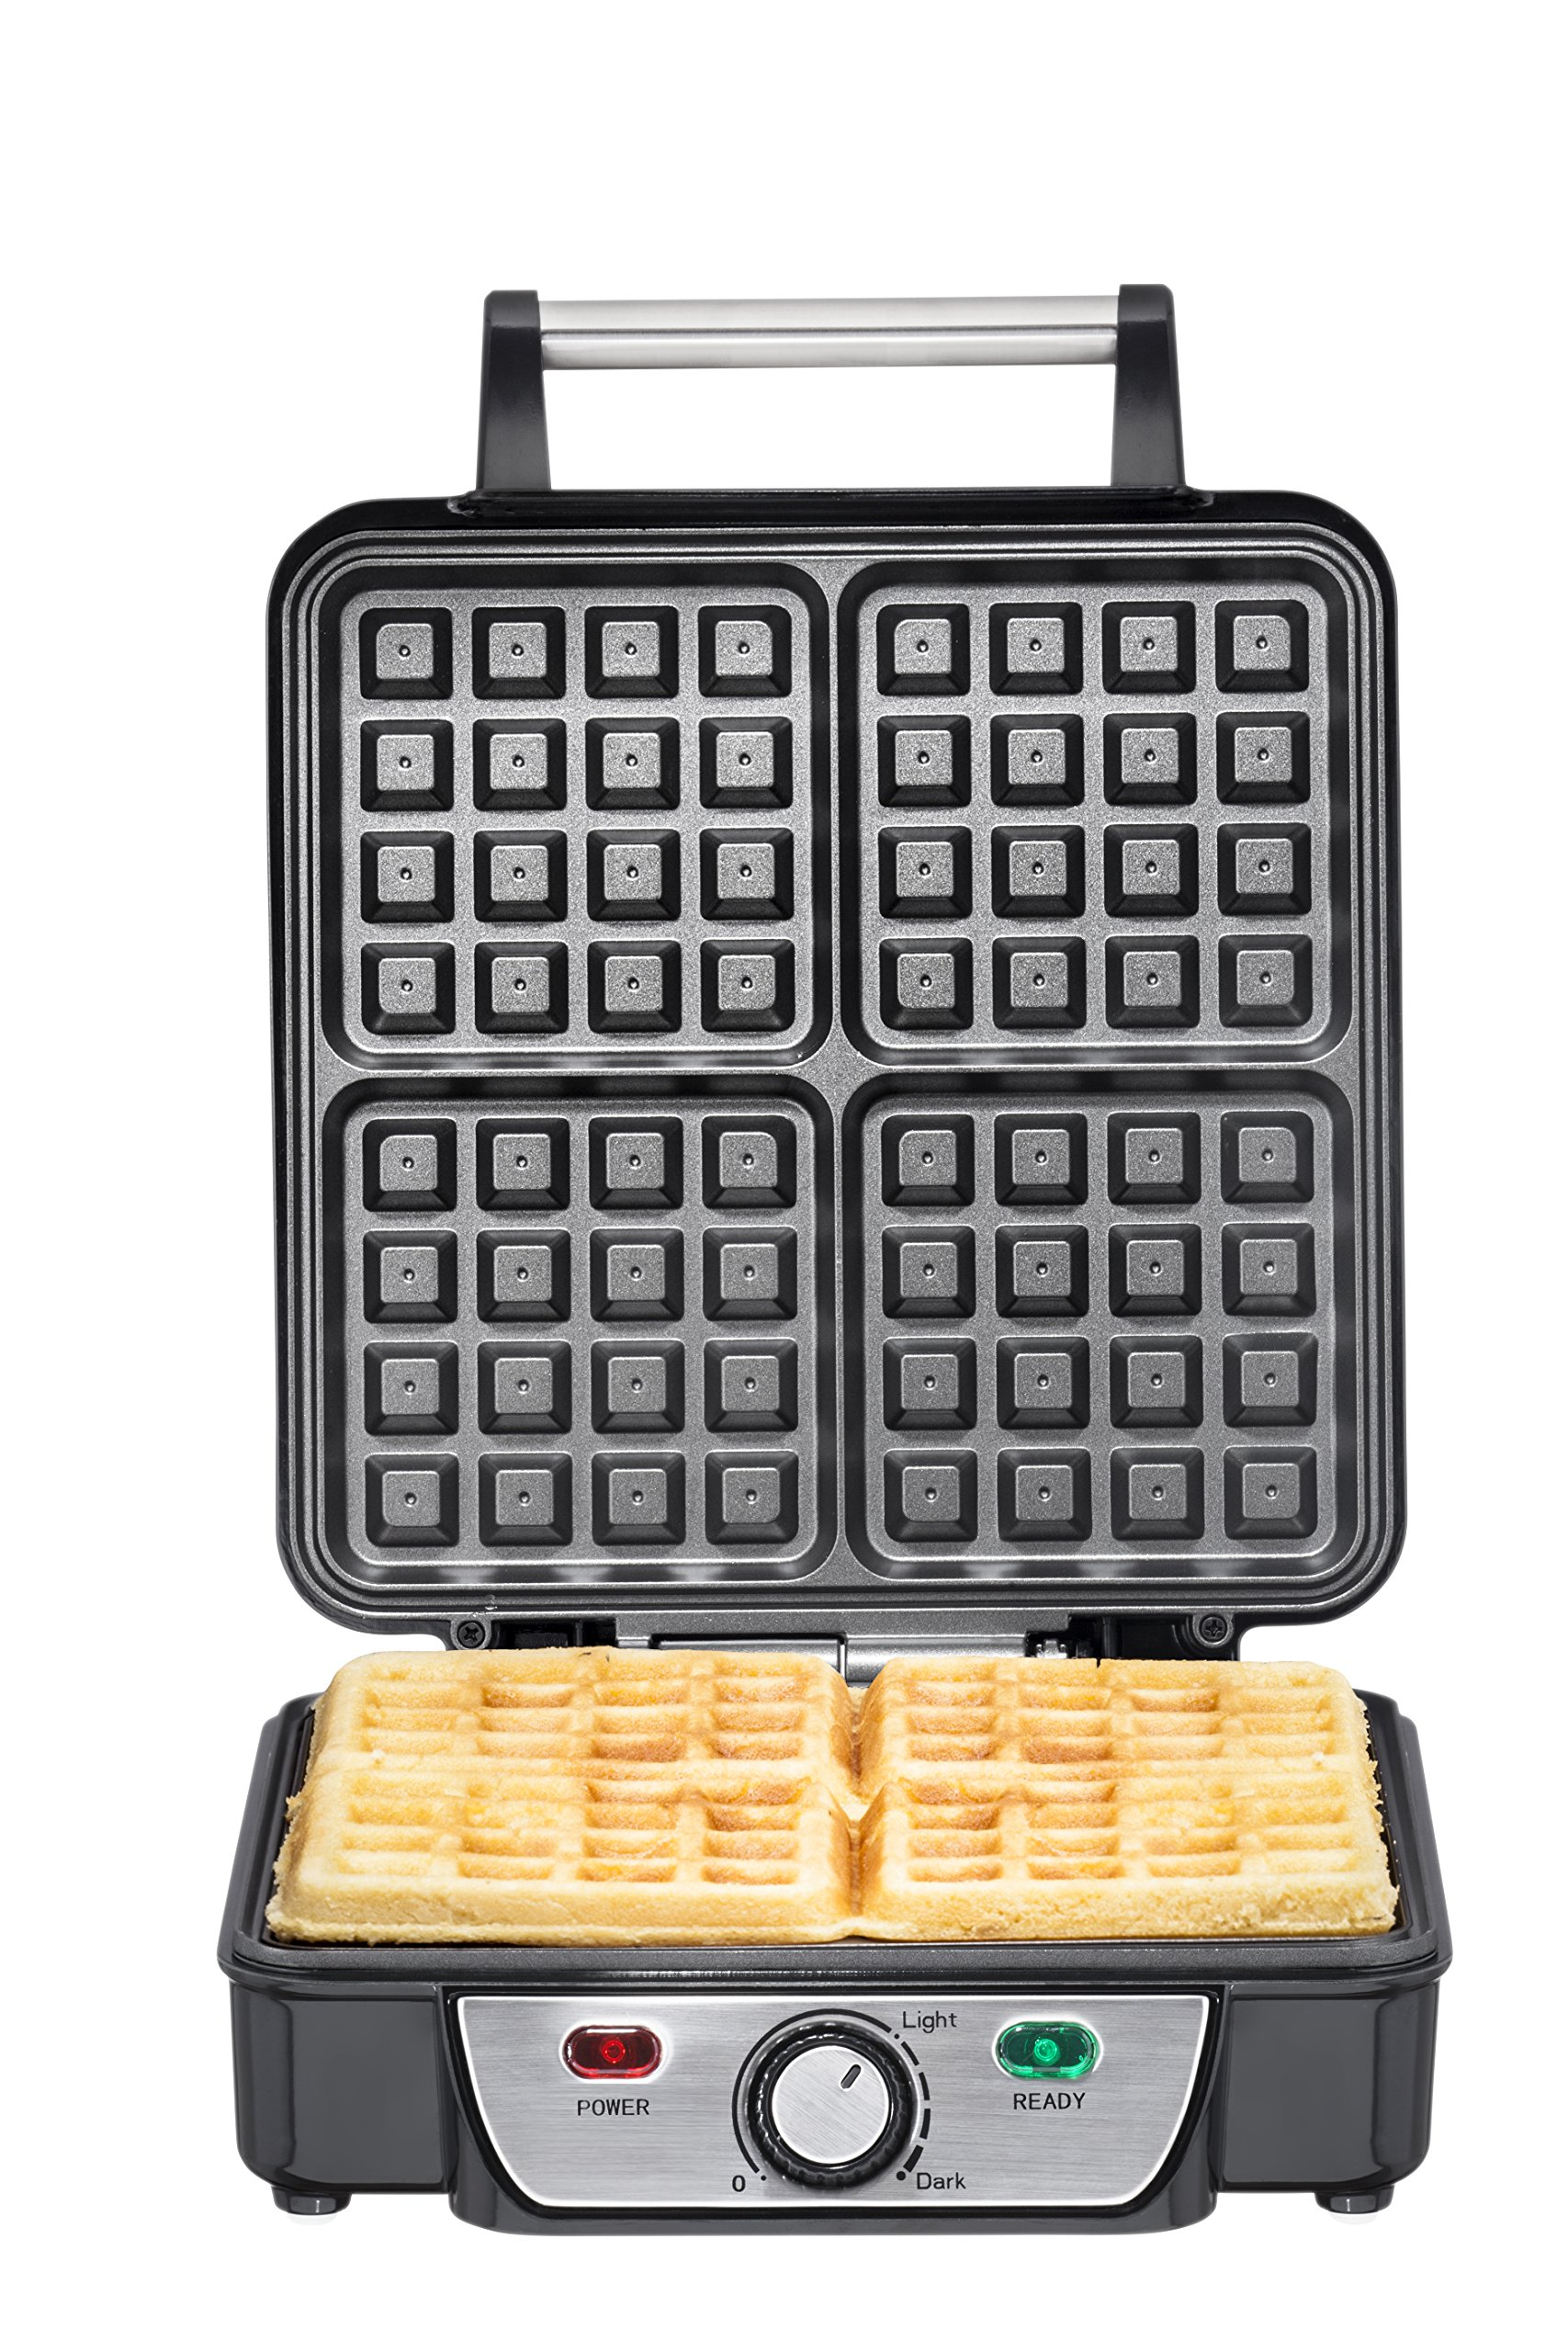 Chefman Belgian Waffle Maker, 4-Slice, Stainless Steel Non-Stick Cooking Surface, Cool Touch Handle, Adjustable Browning Control, Power/Ready Lights, Waffle Cookbook Included - RJ04-4P by Chefman (Image #4)